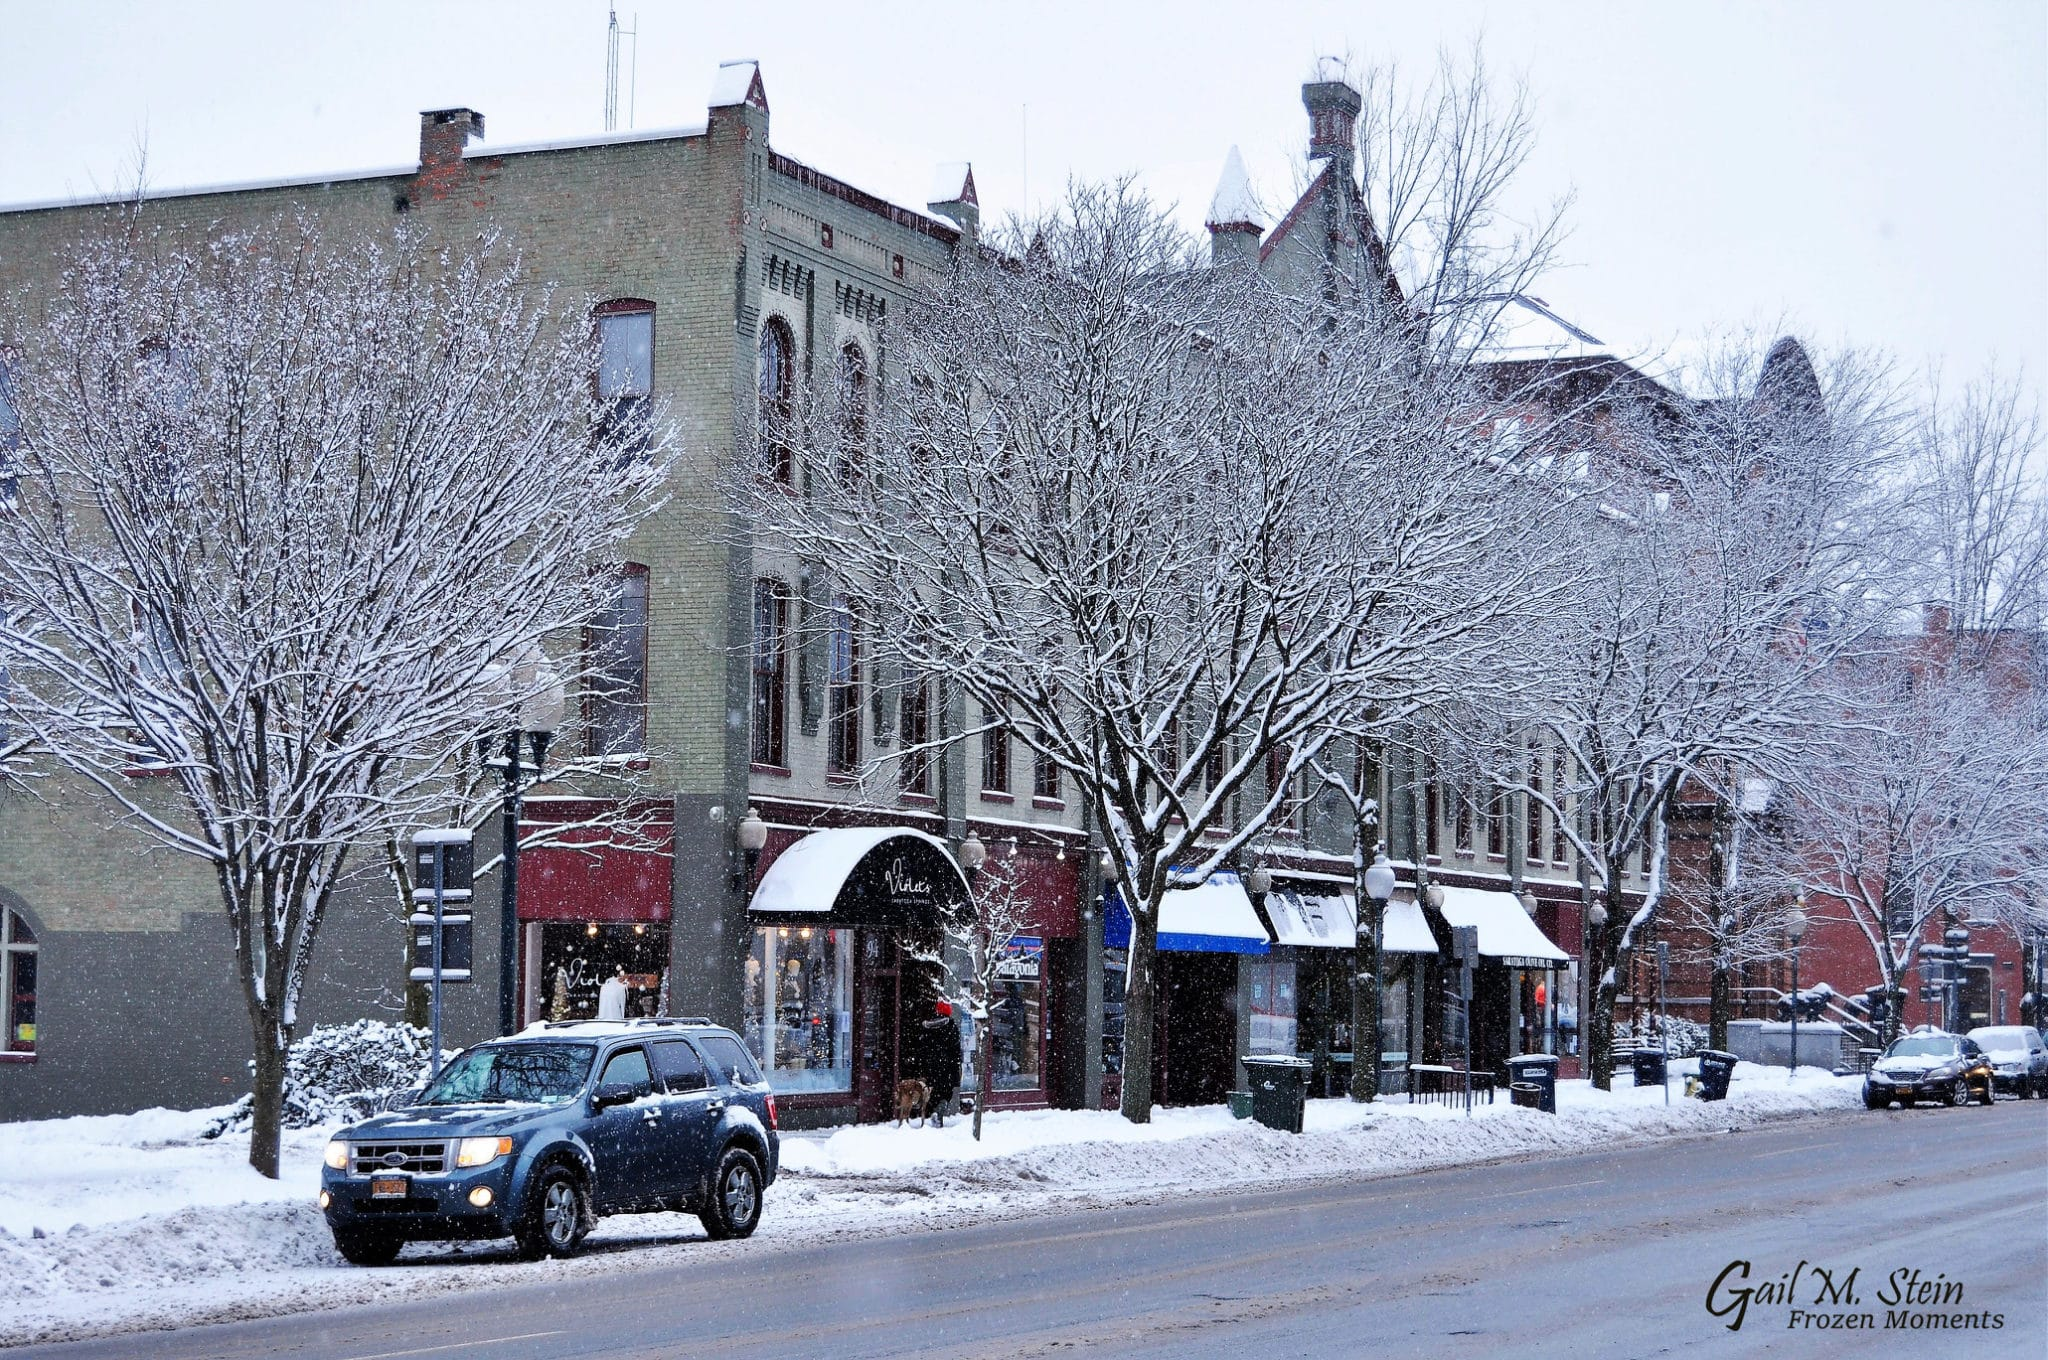 Downtown Shop on Broadway in Saratoga Springs